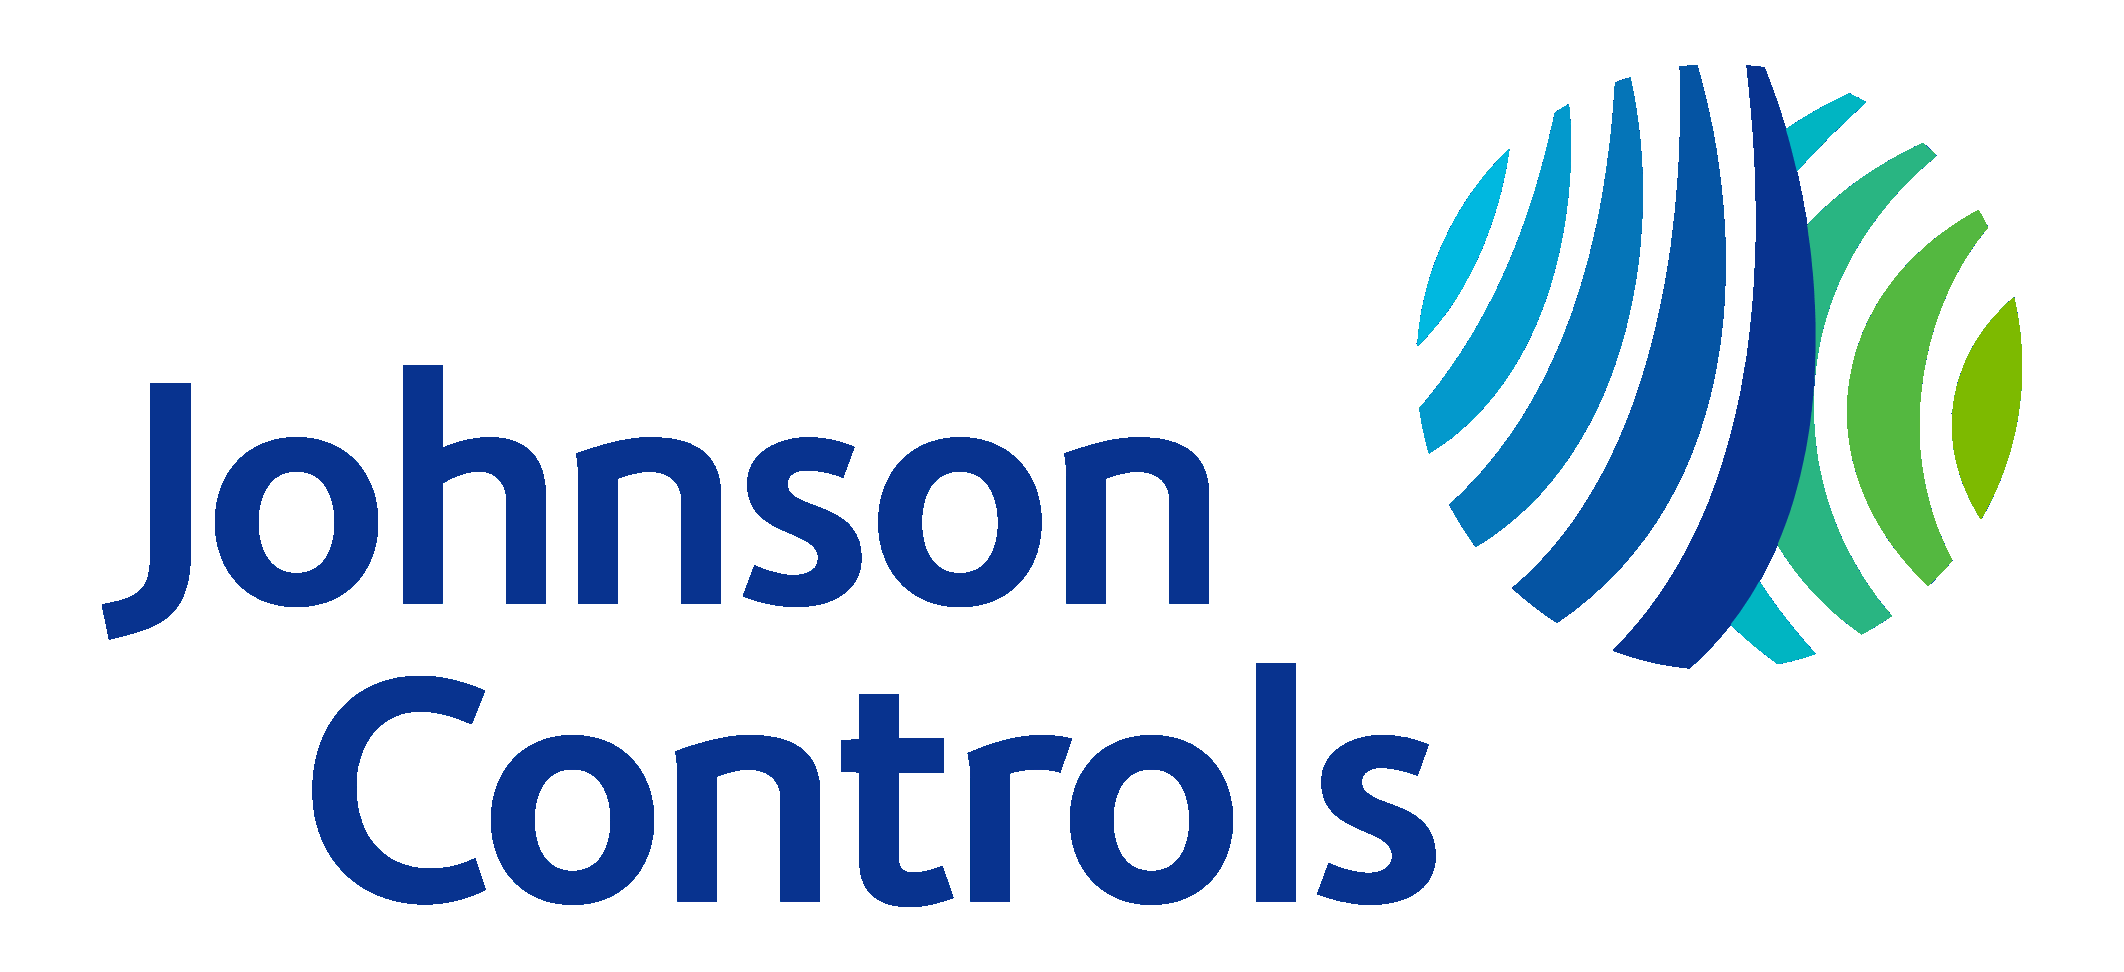 2_JohnsonControls.png